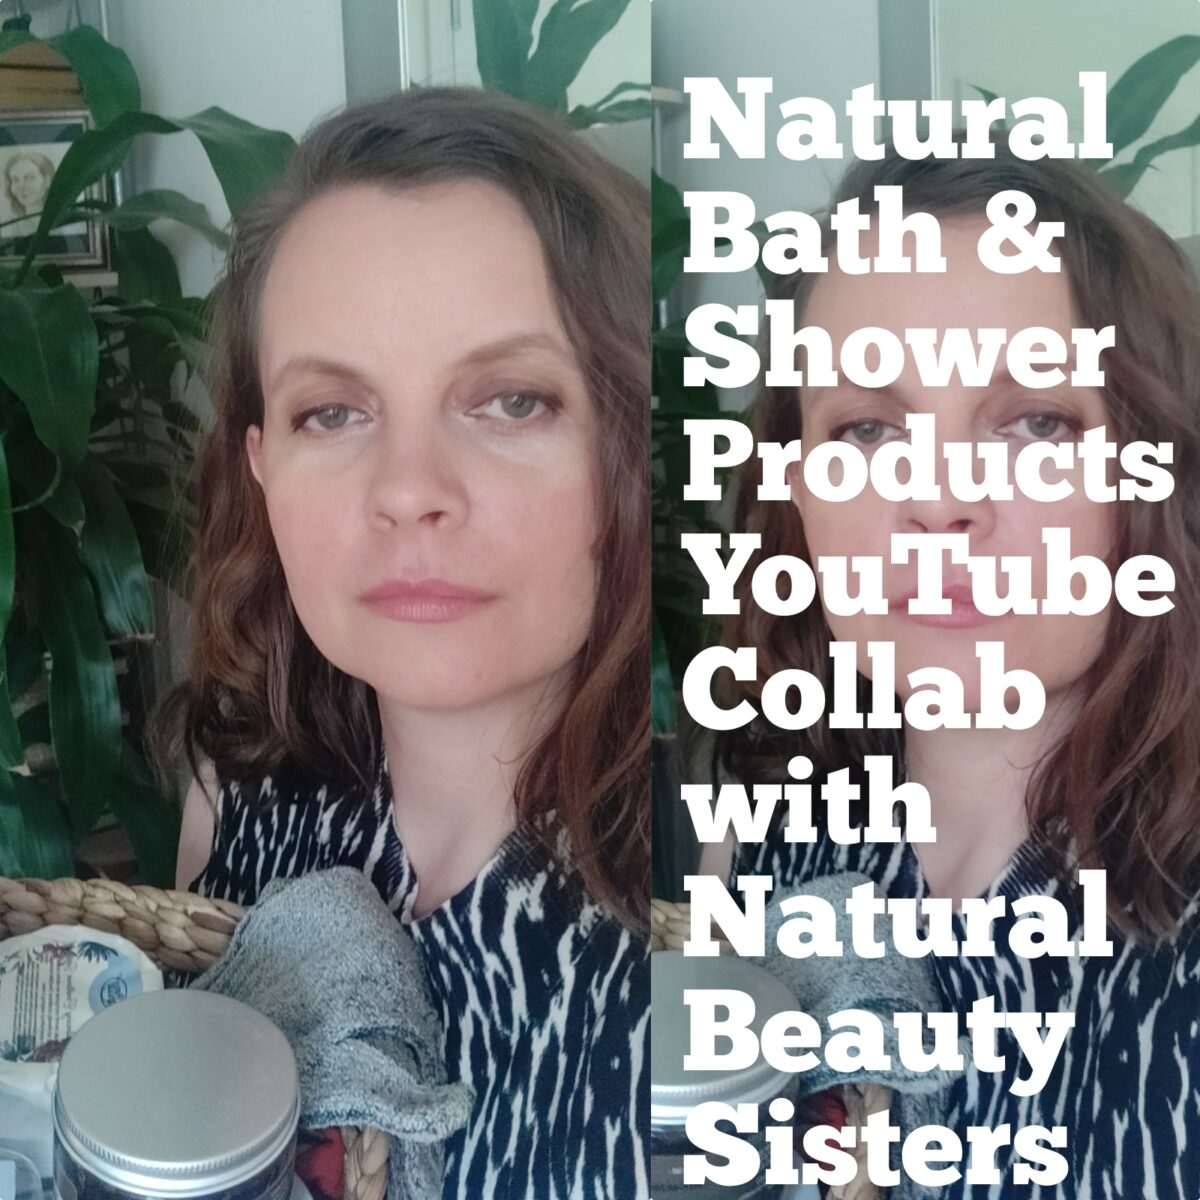 My Natural Bath & Shower Products – YouTube Collaboration